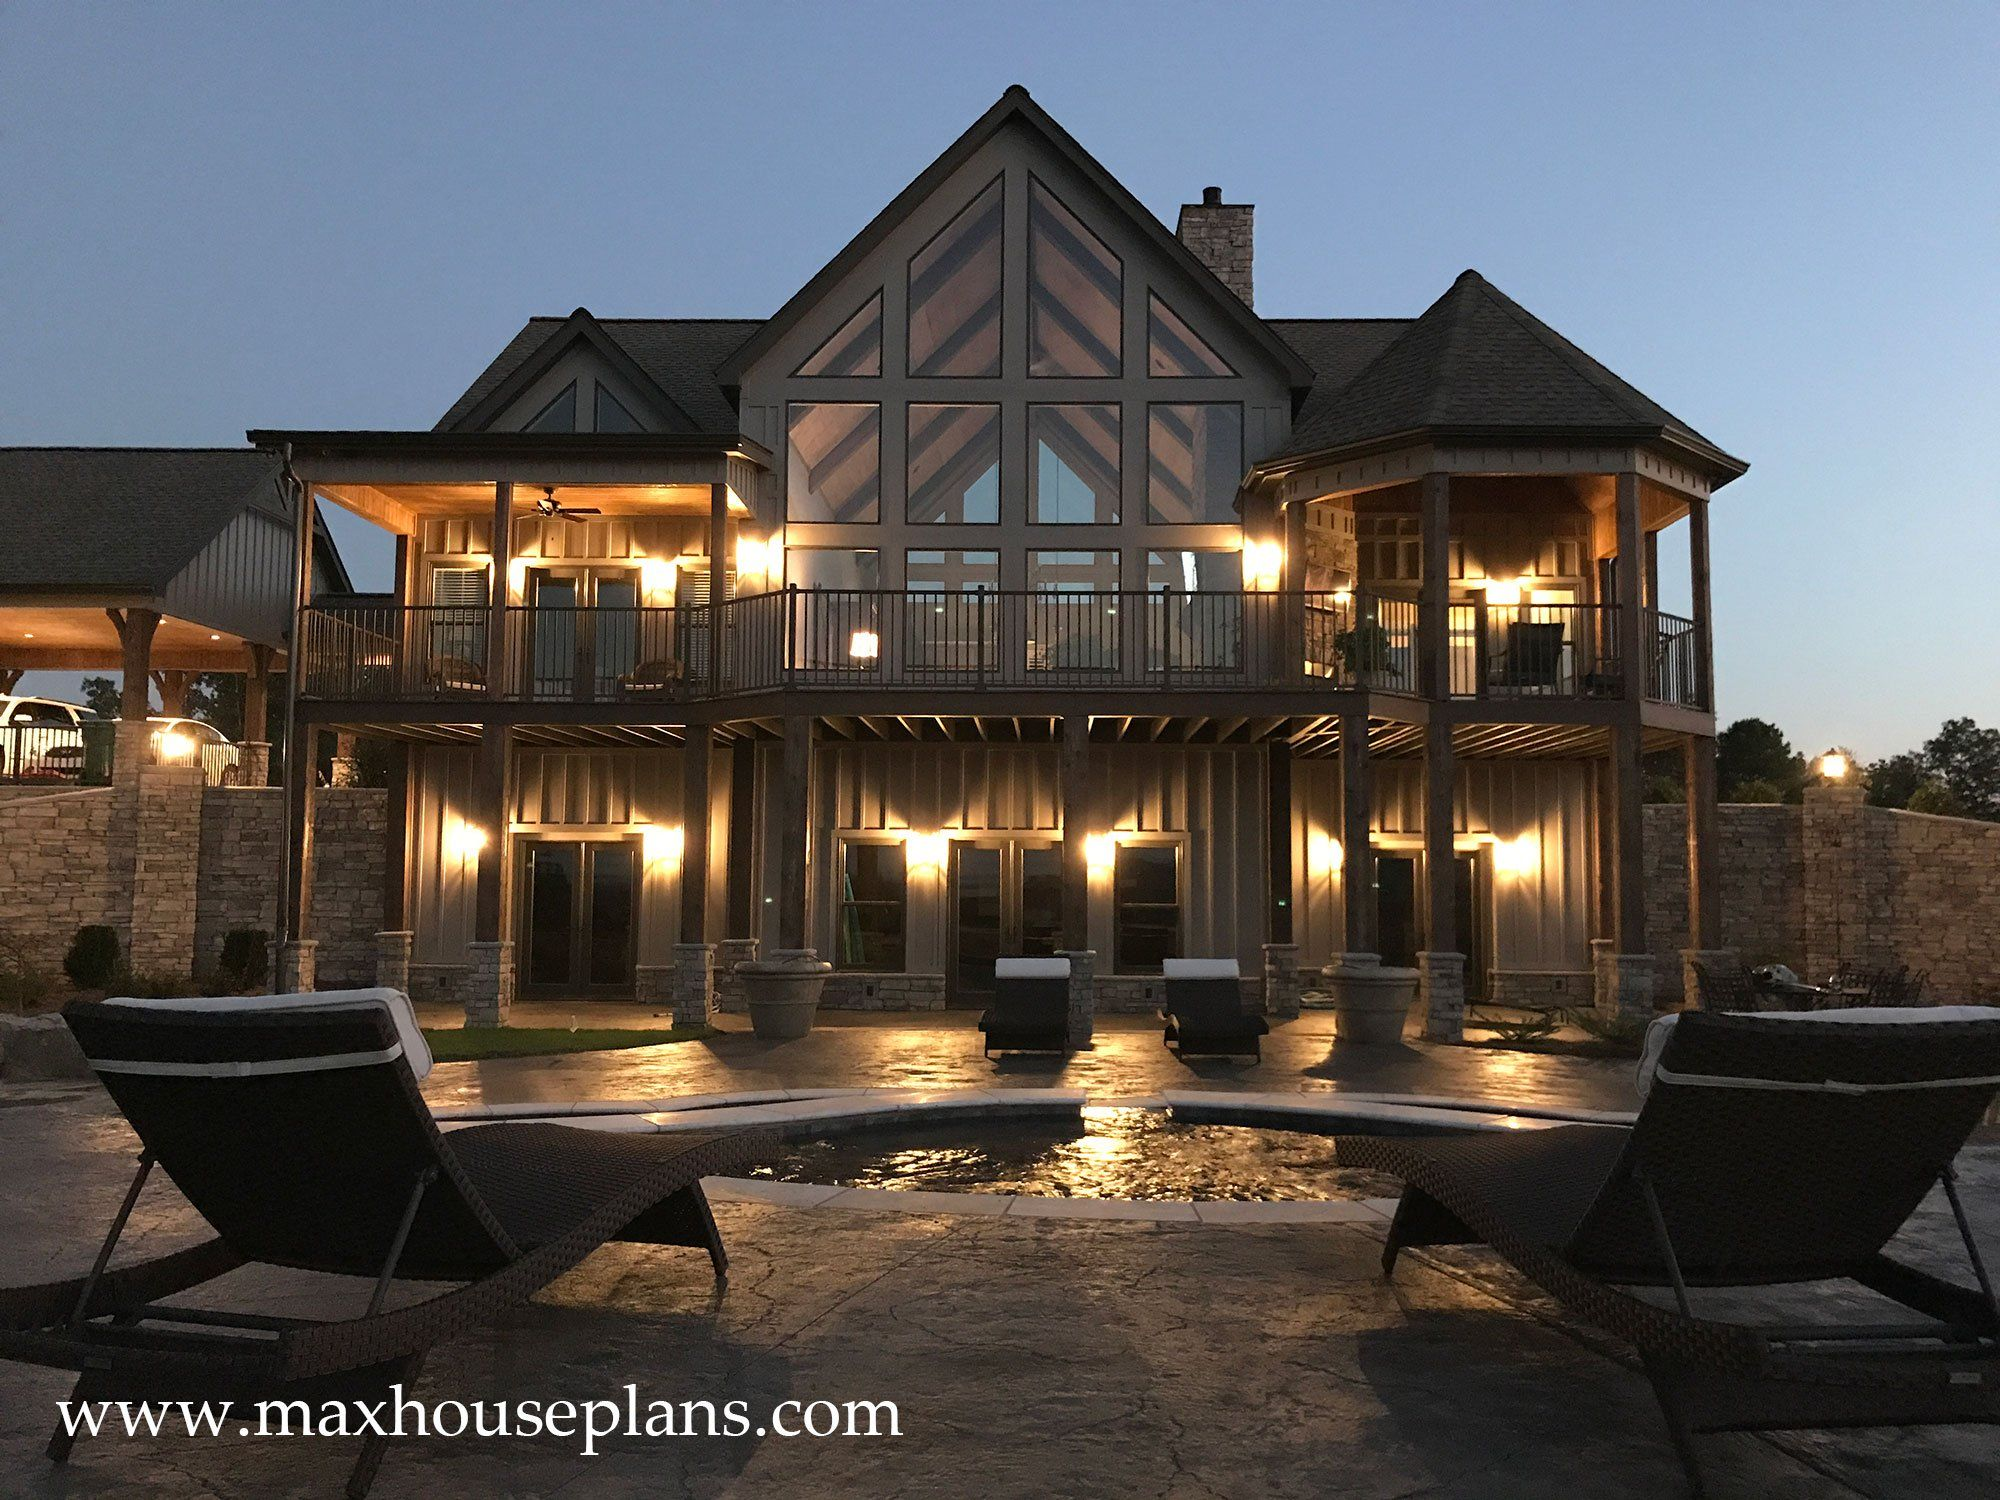 100+ Best House Plans images | house plans, house, lake house plans